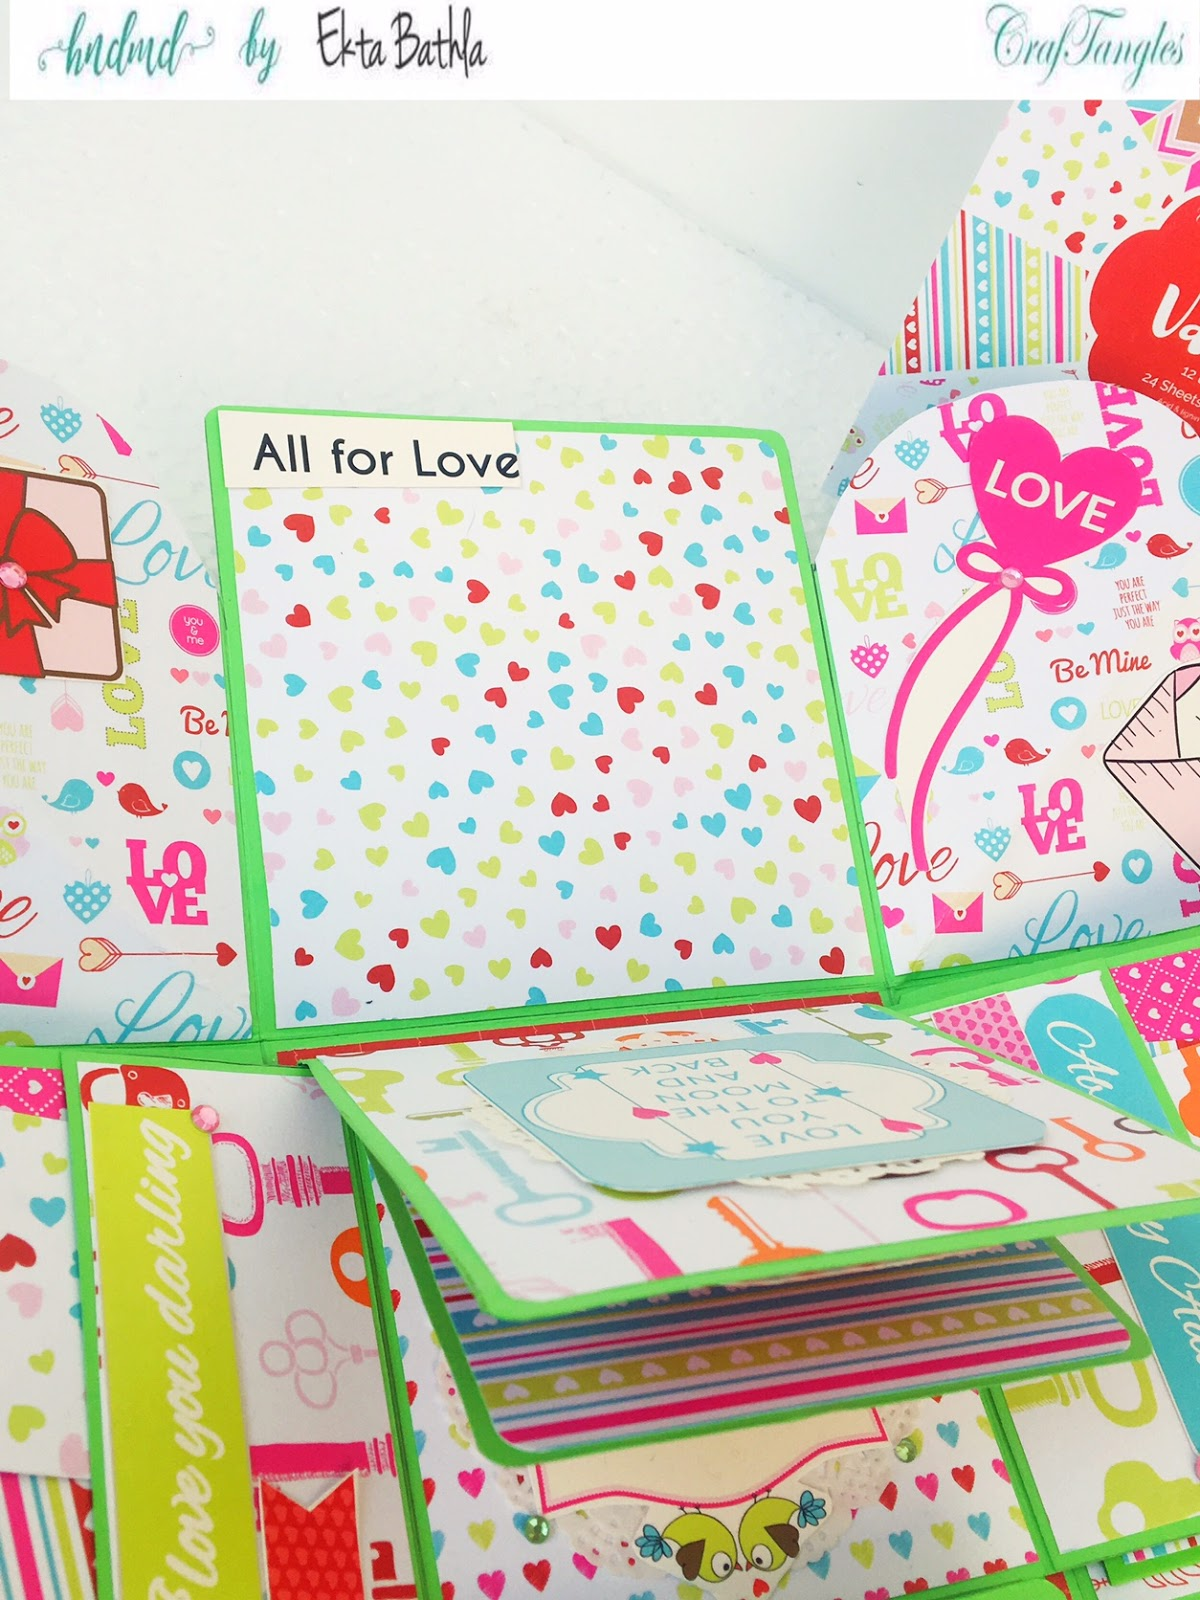 Love themed explosion box using CrafTangles Be My Valentine paper and element packs 23